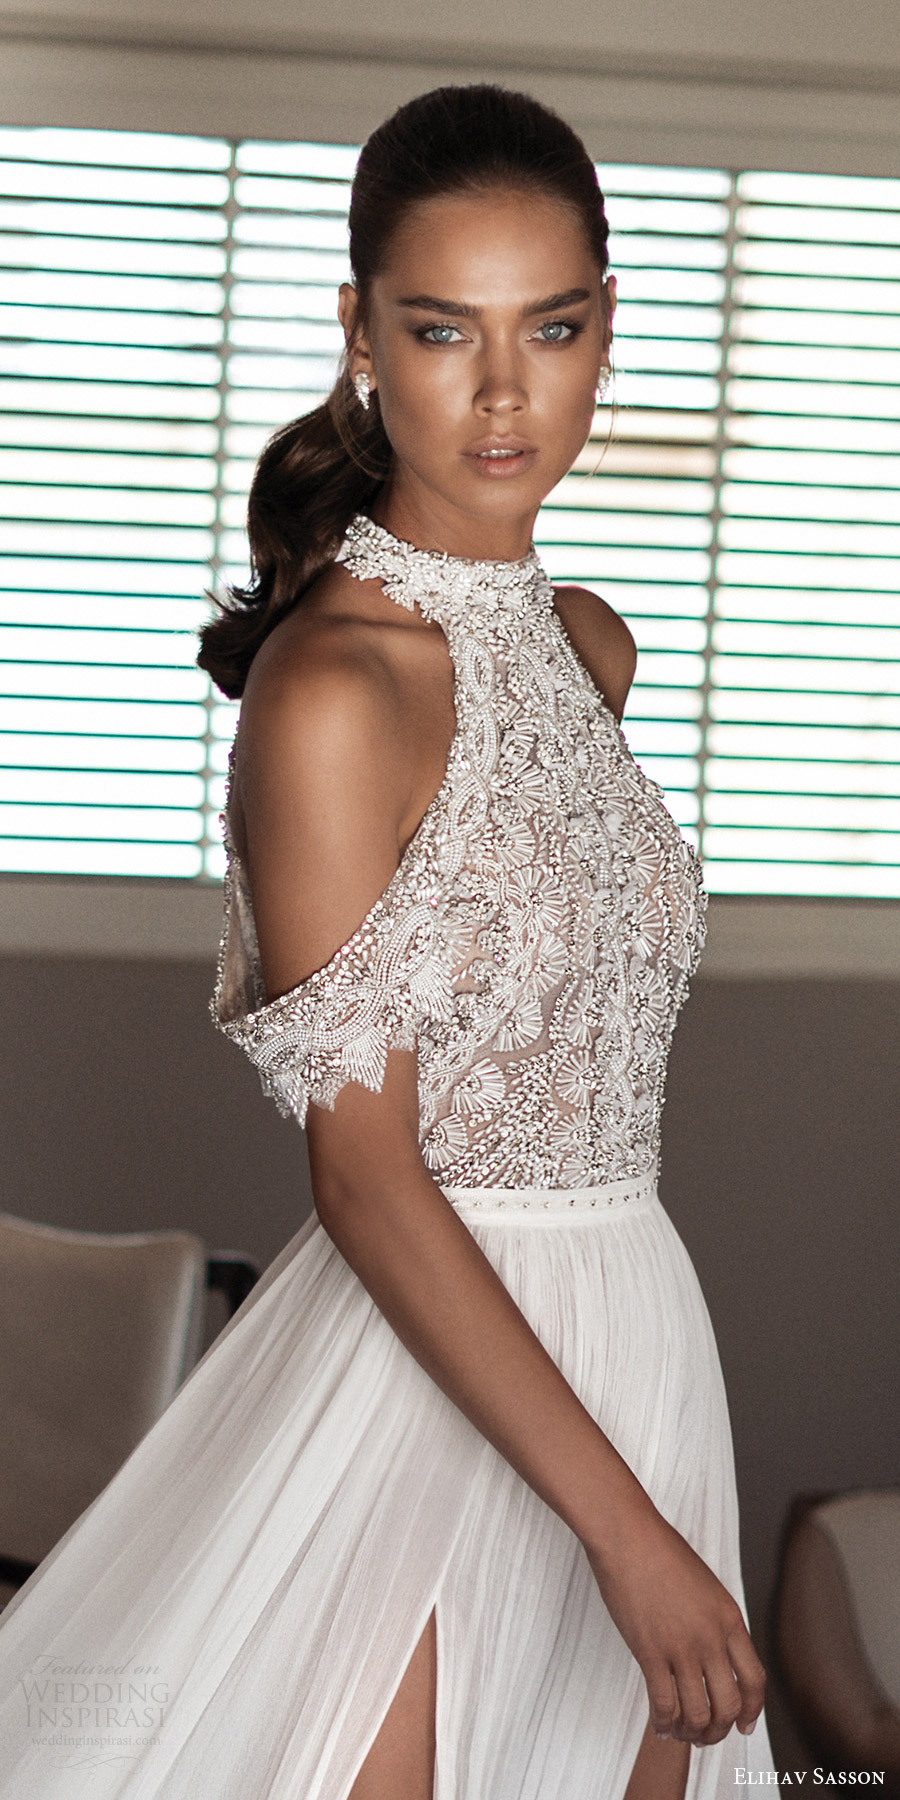 3687c5d0937 Elihav Sasson 2018 Wedding Dresses.